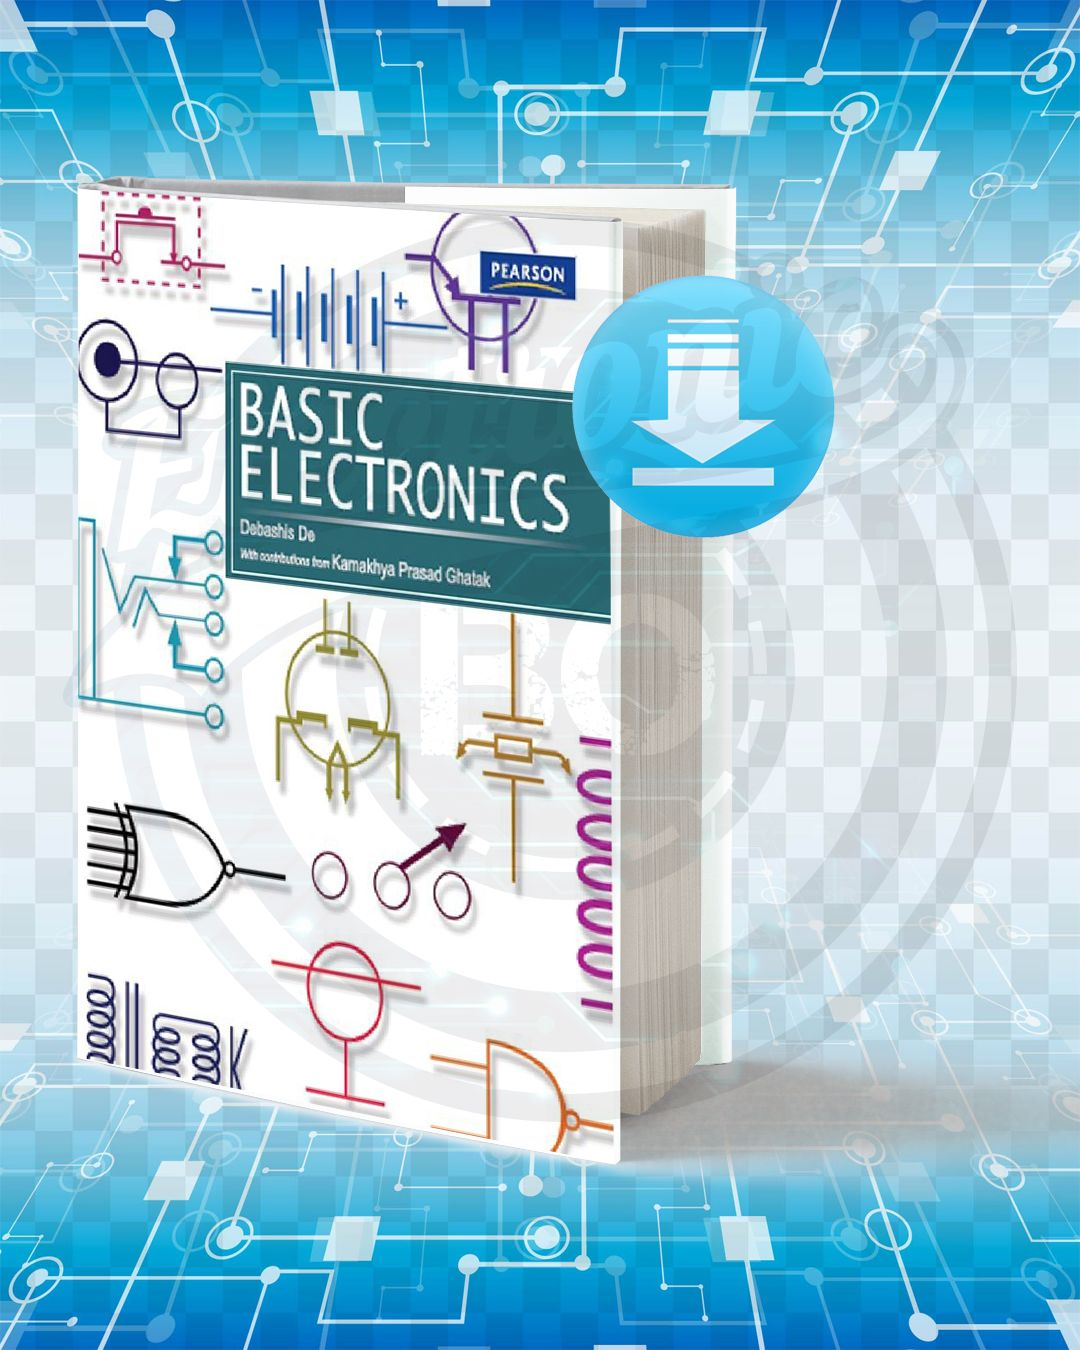 Download Basic Electronics Electronics Basics Electronics Projects Diy Electronic Engineering